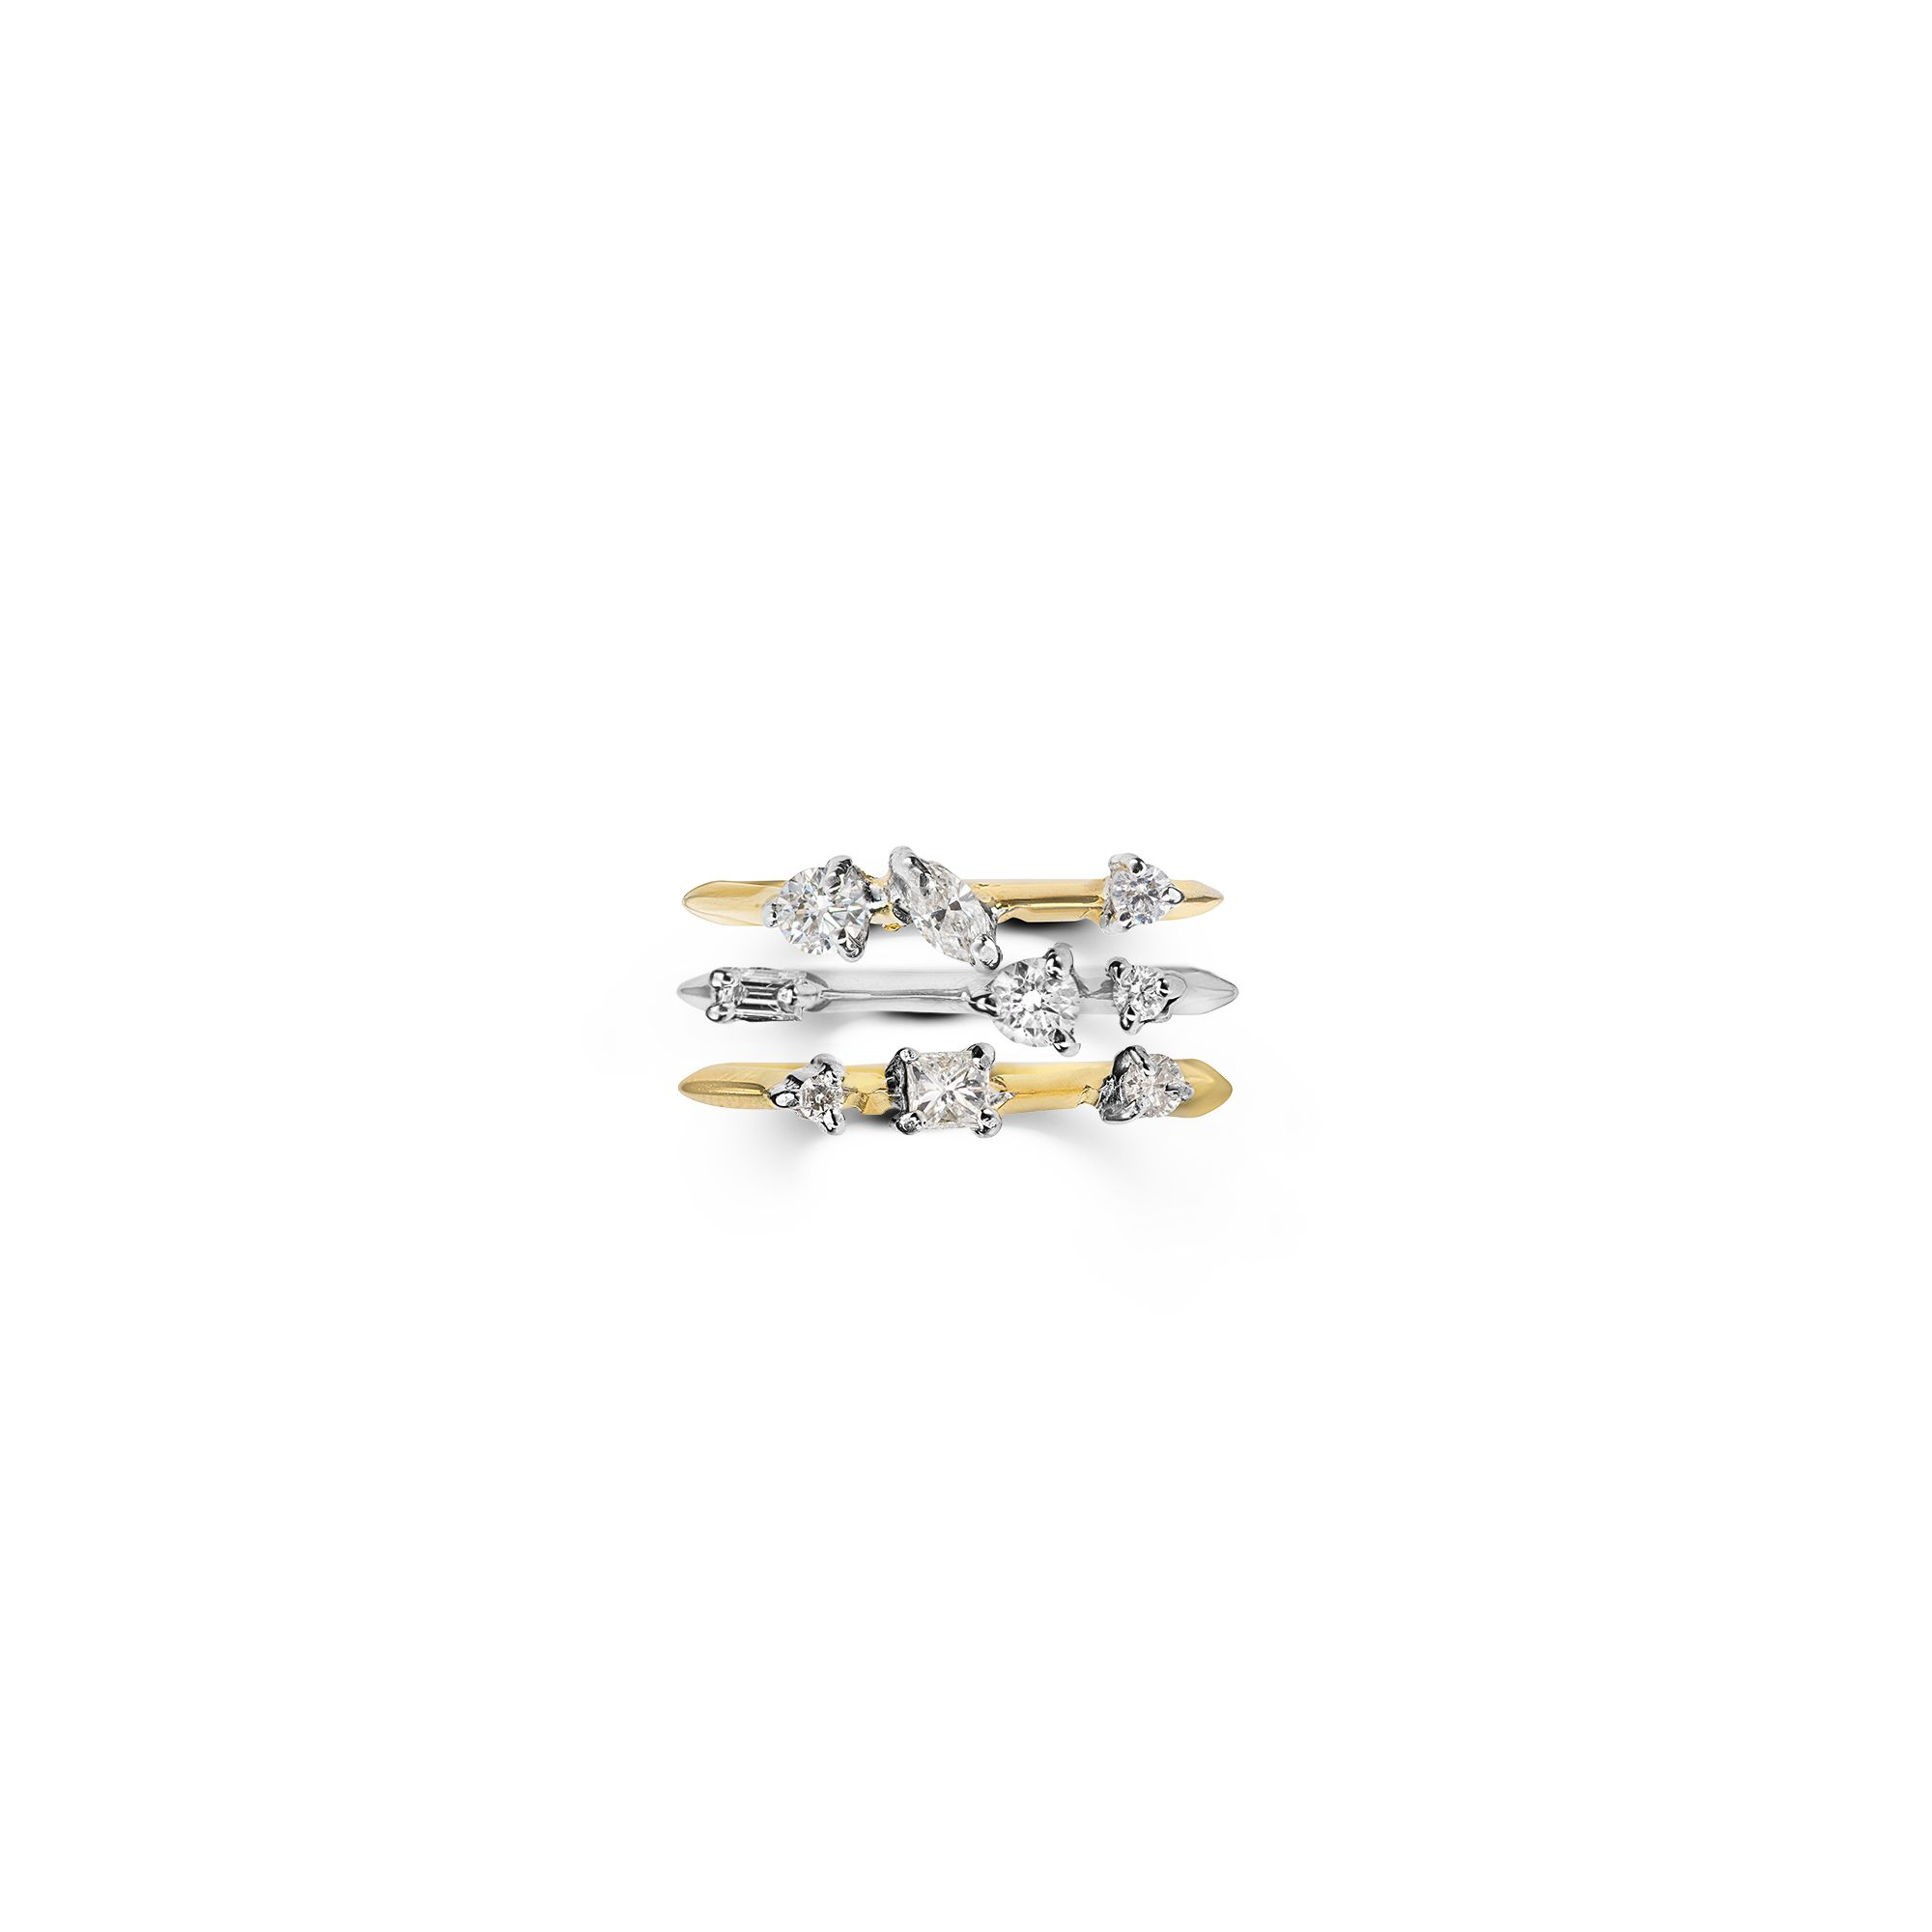 Set of three stackable 'Balance' rings 18kt Yellow and white gold rings with diamonds